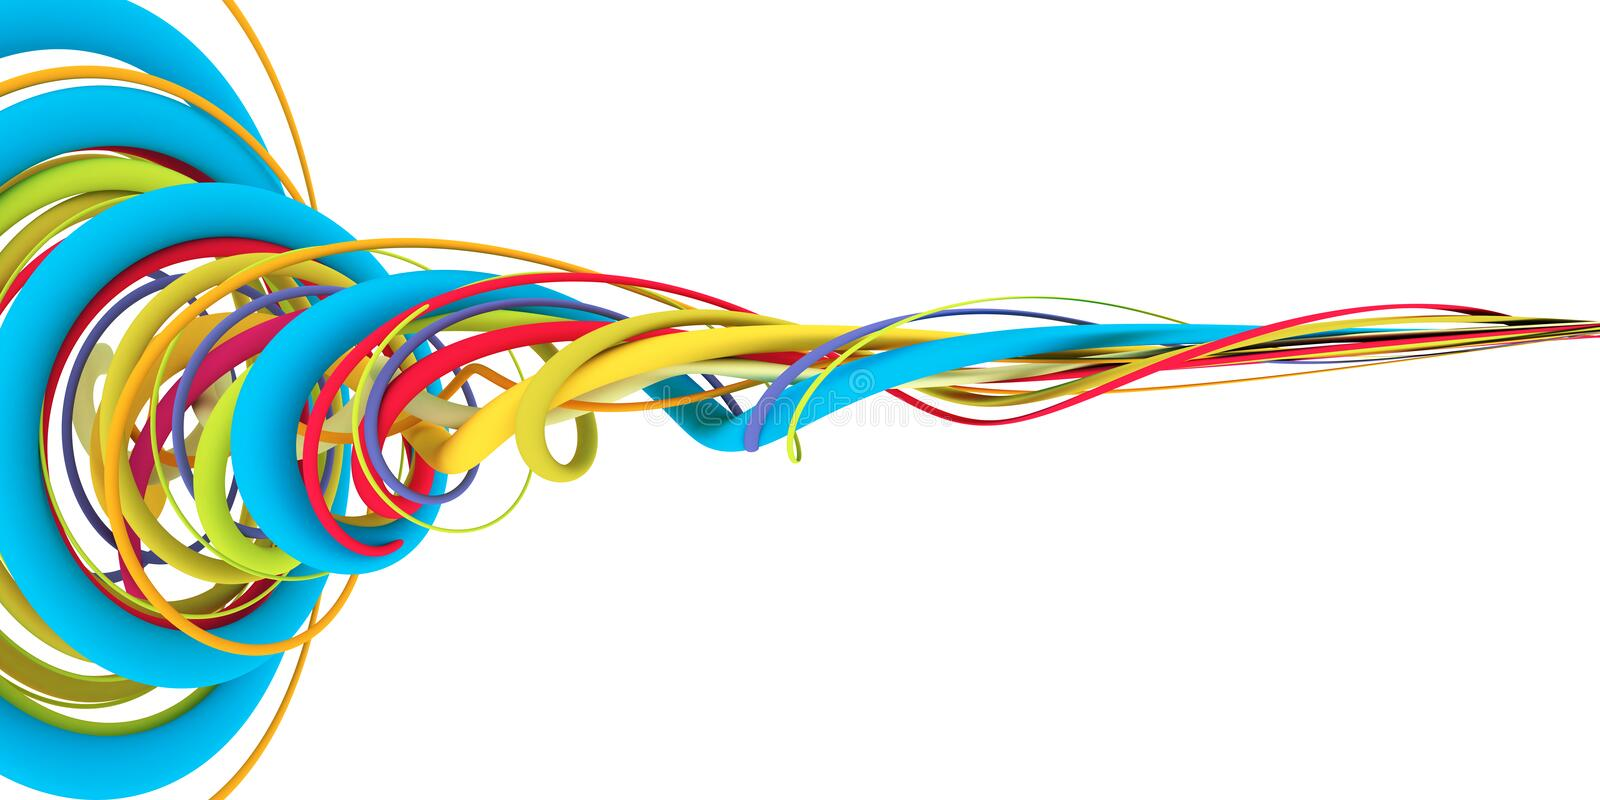 Colorful wires stock illustration. Illustration of technology - 40820175